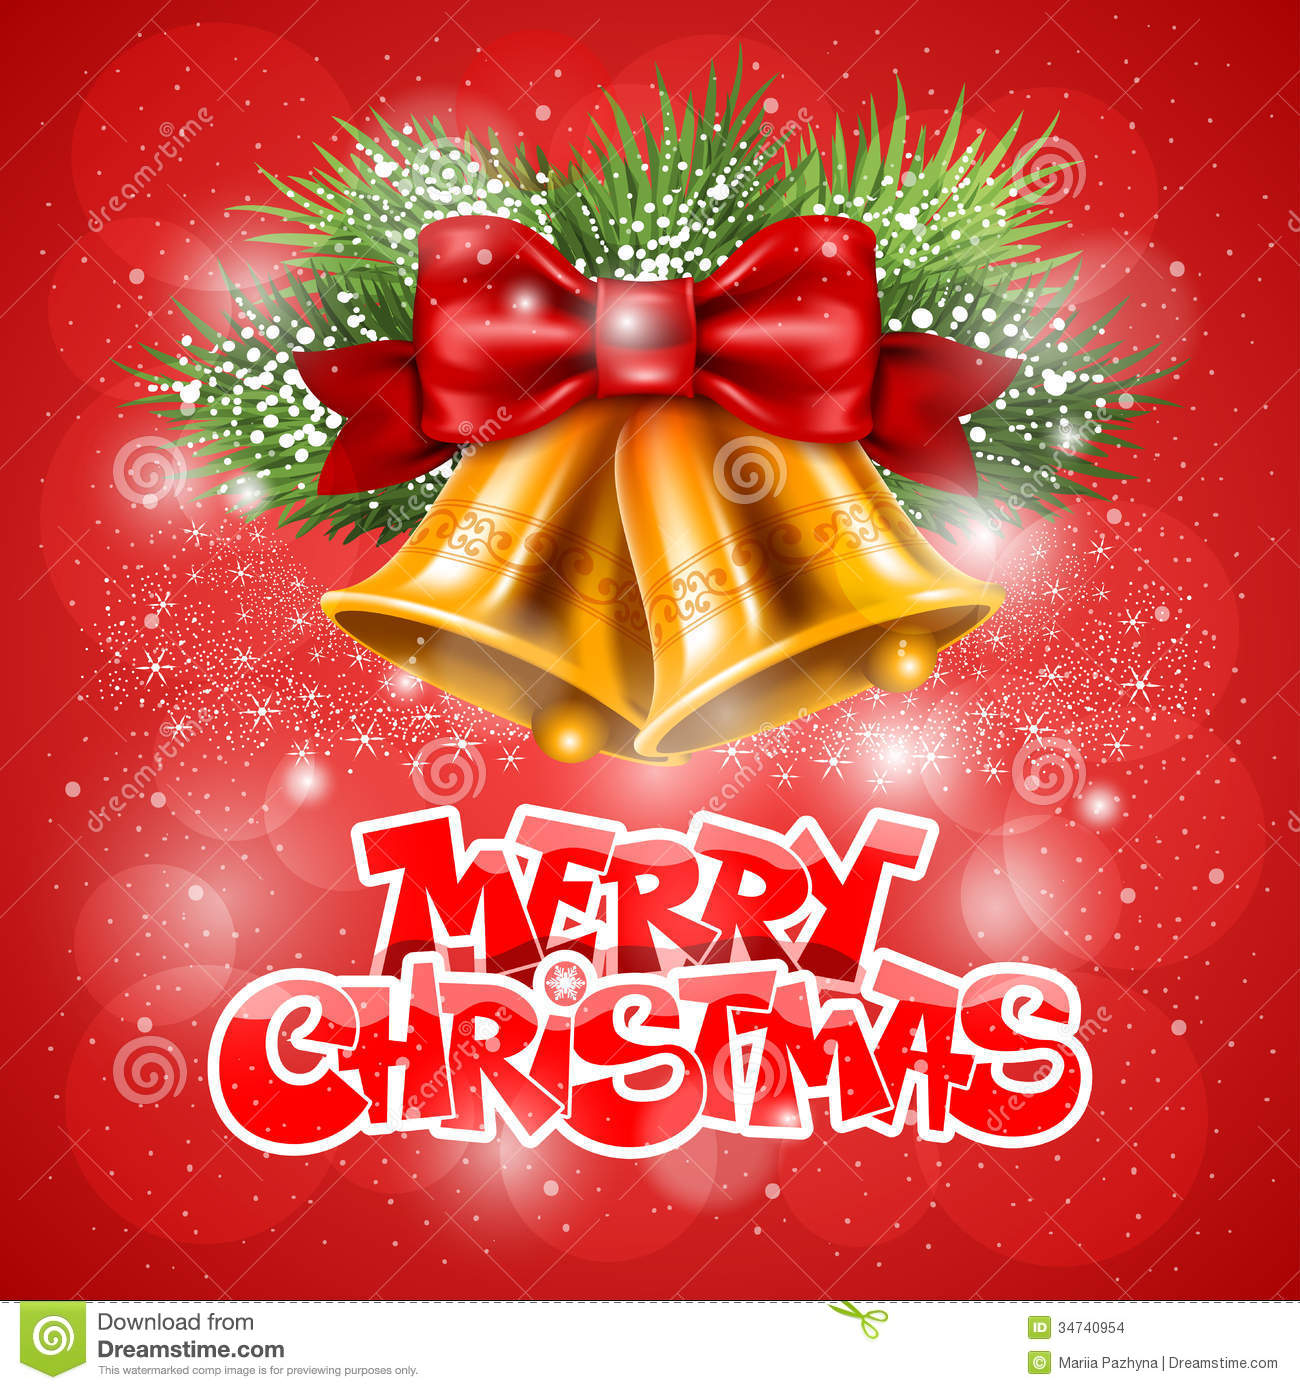 Christmas greeting images juvecenitdelacabrera christmas greeting images m4hsunfo